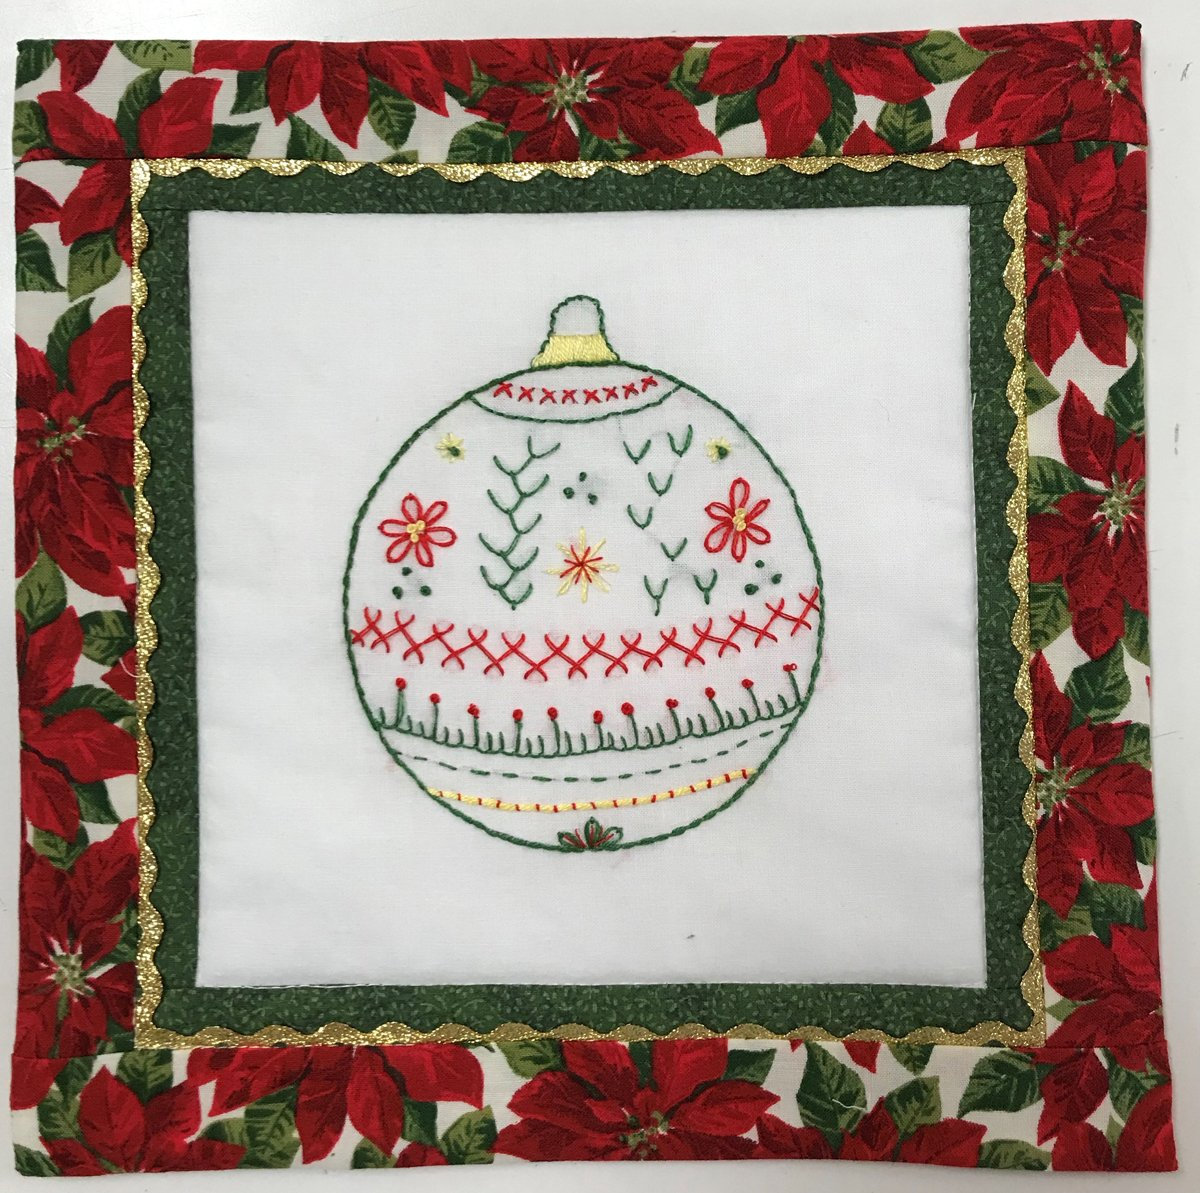 Bellevue Embroidery 101 1 Day